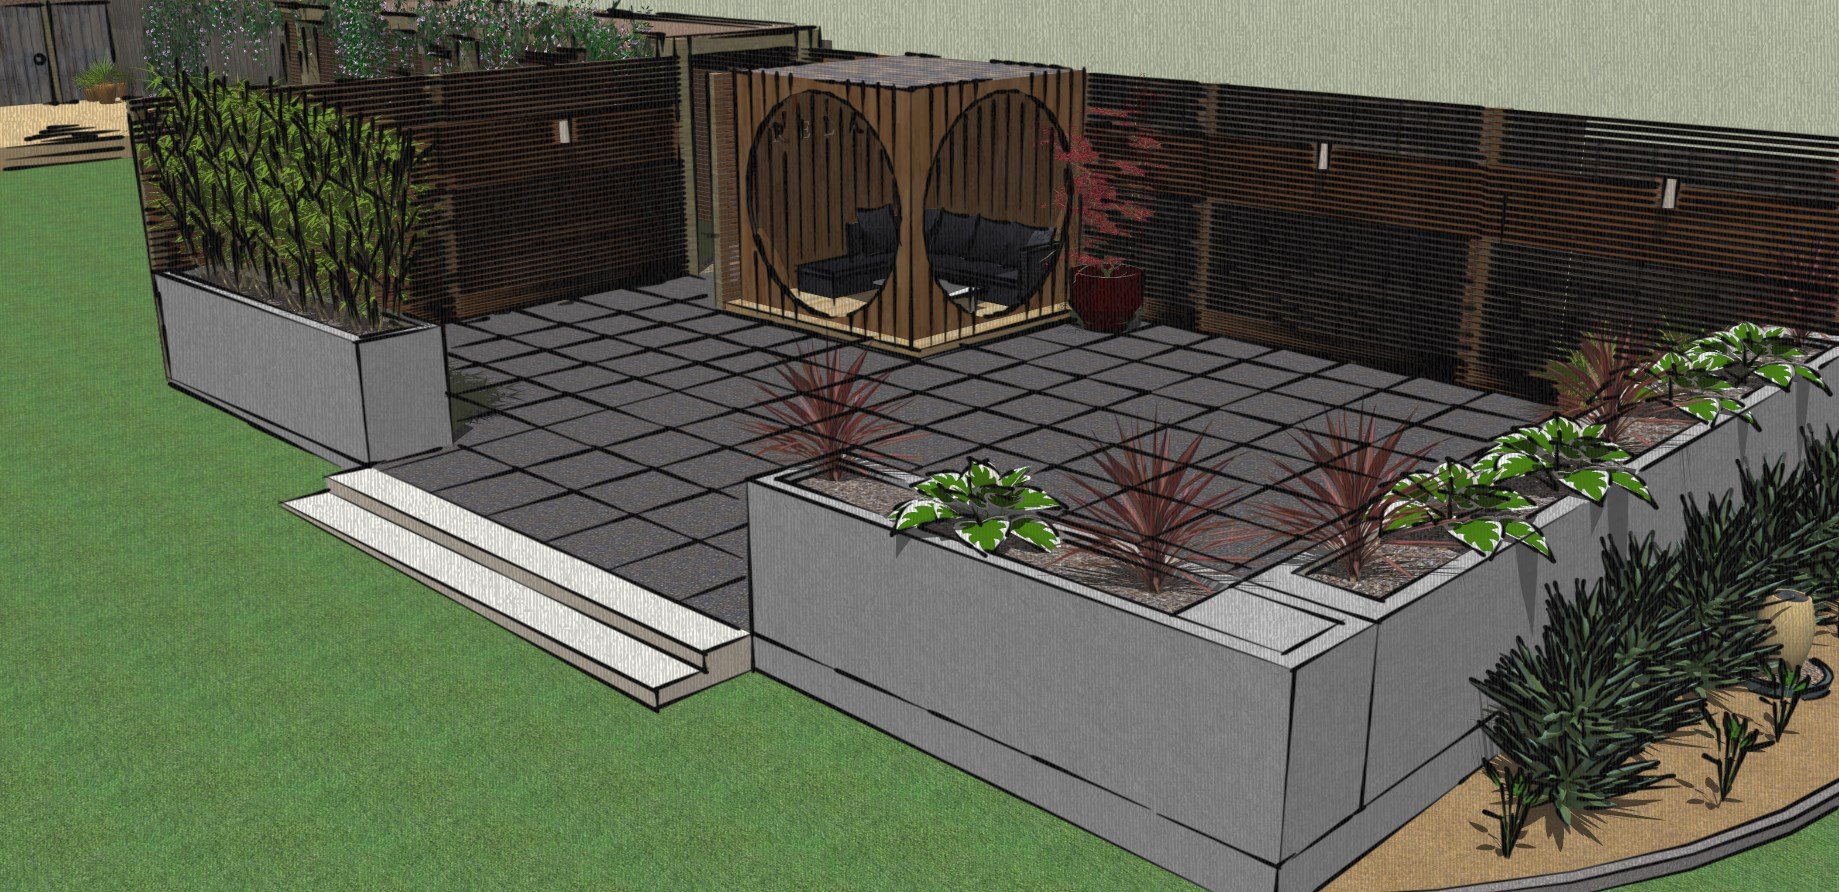 Patio and feature